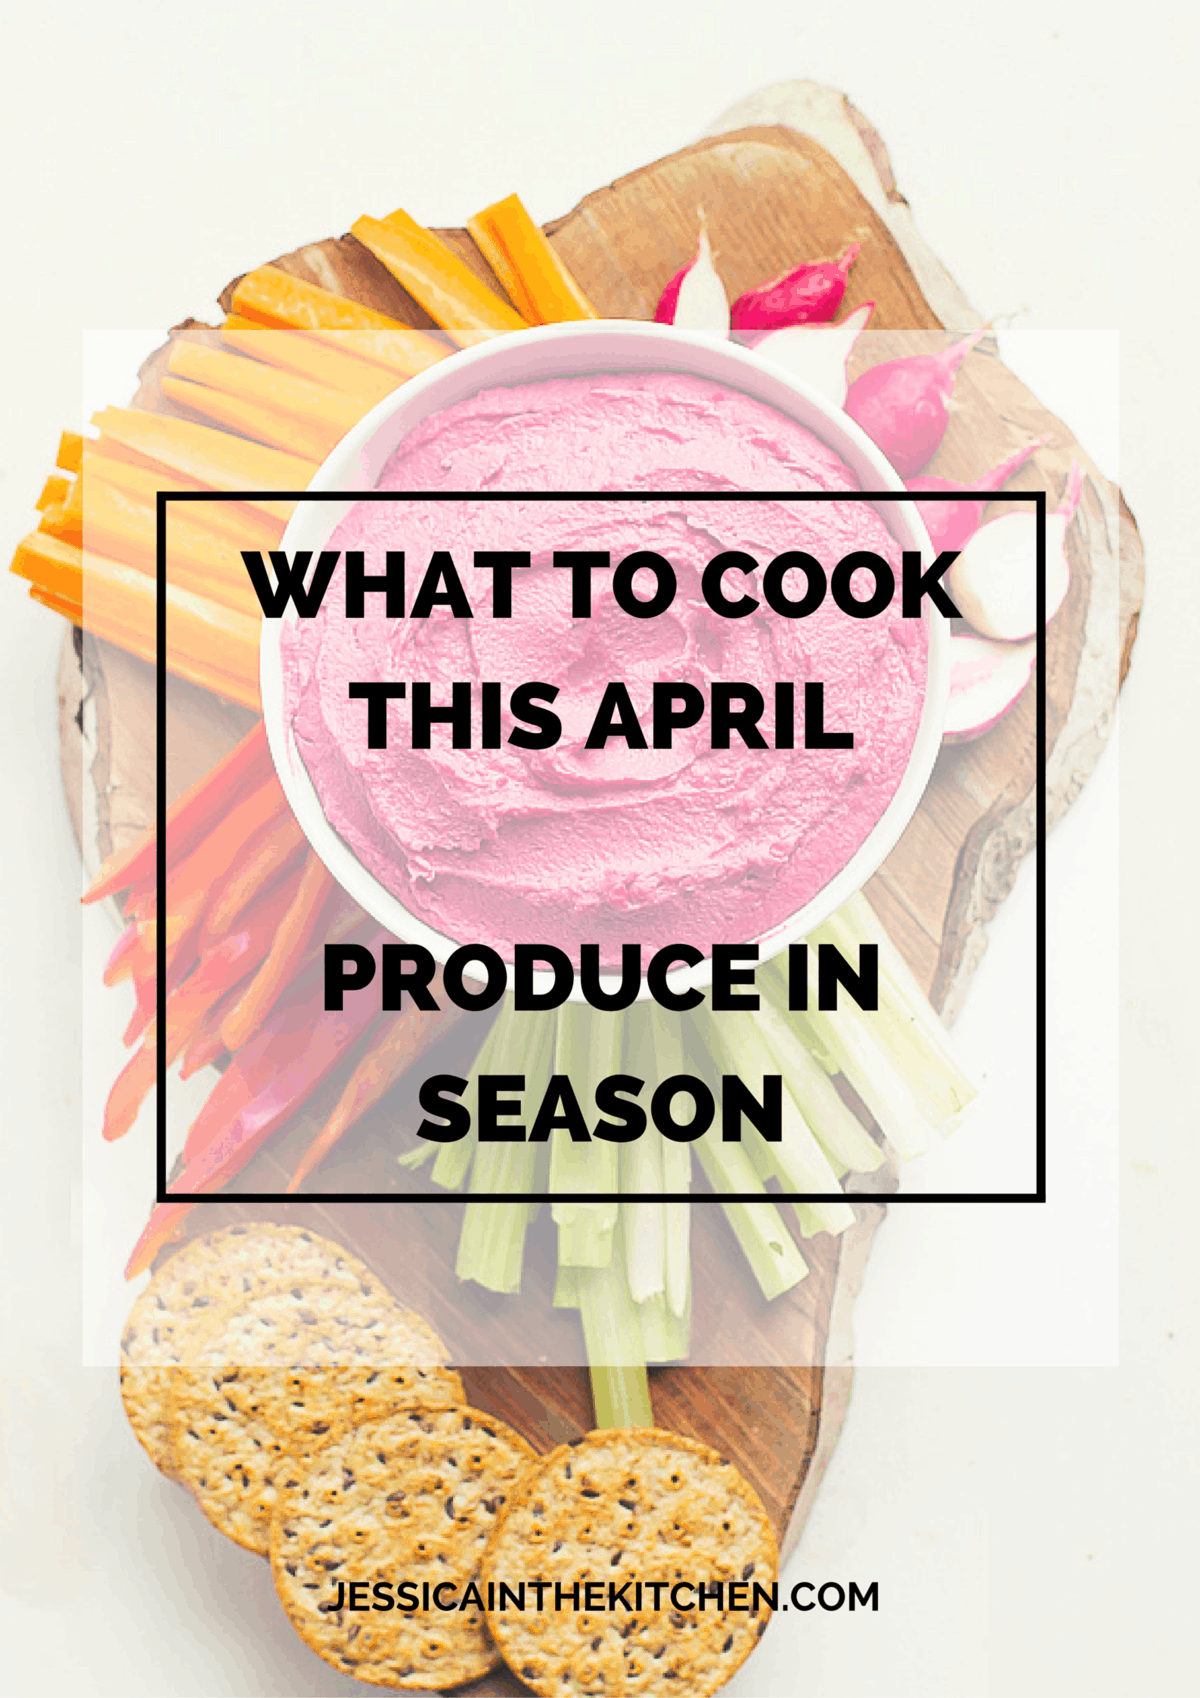 What produce is in season this April